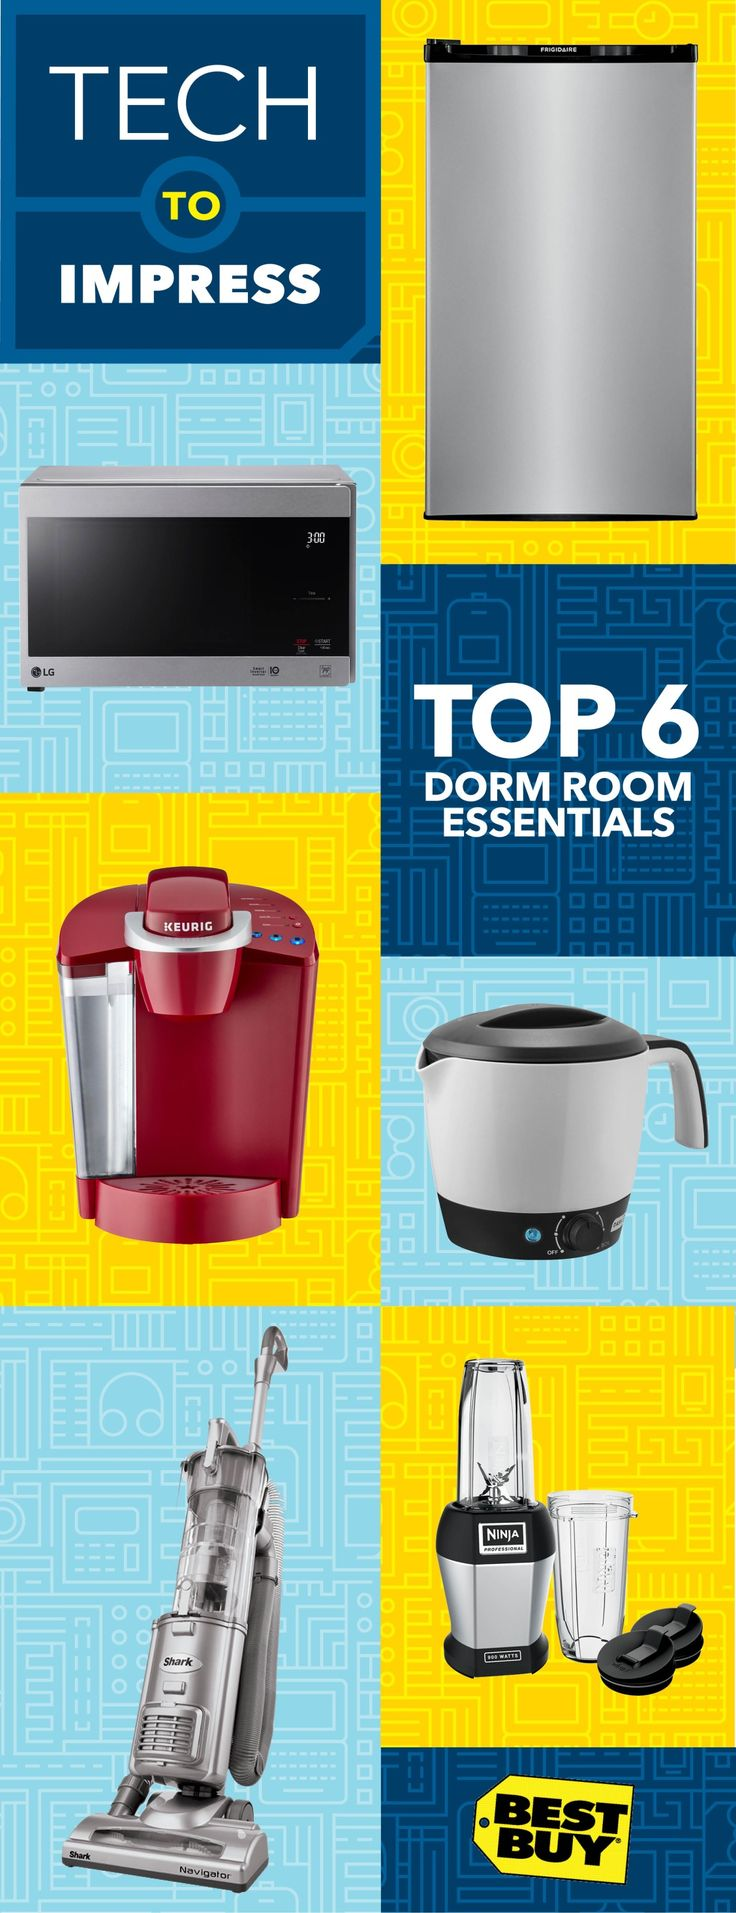 Think Big. Buy Small.   Turn your dorm room into a smart, efficiently outfitted living space with these back-to-school essentials. Like a space-saving LG compact microwave. Or a Keurig K50 coffee maker—brews coffee in less than a minute. Don't forget a Ni https://noahxnw.tumblr.com/post/160694549561/styling-short-hair